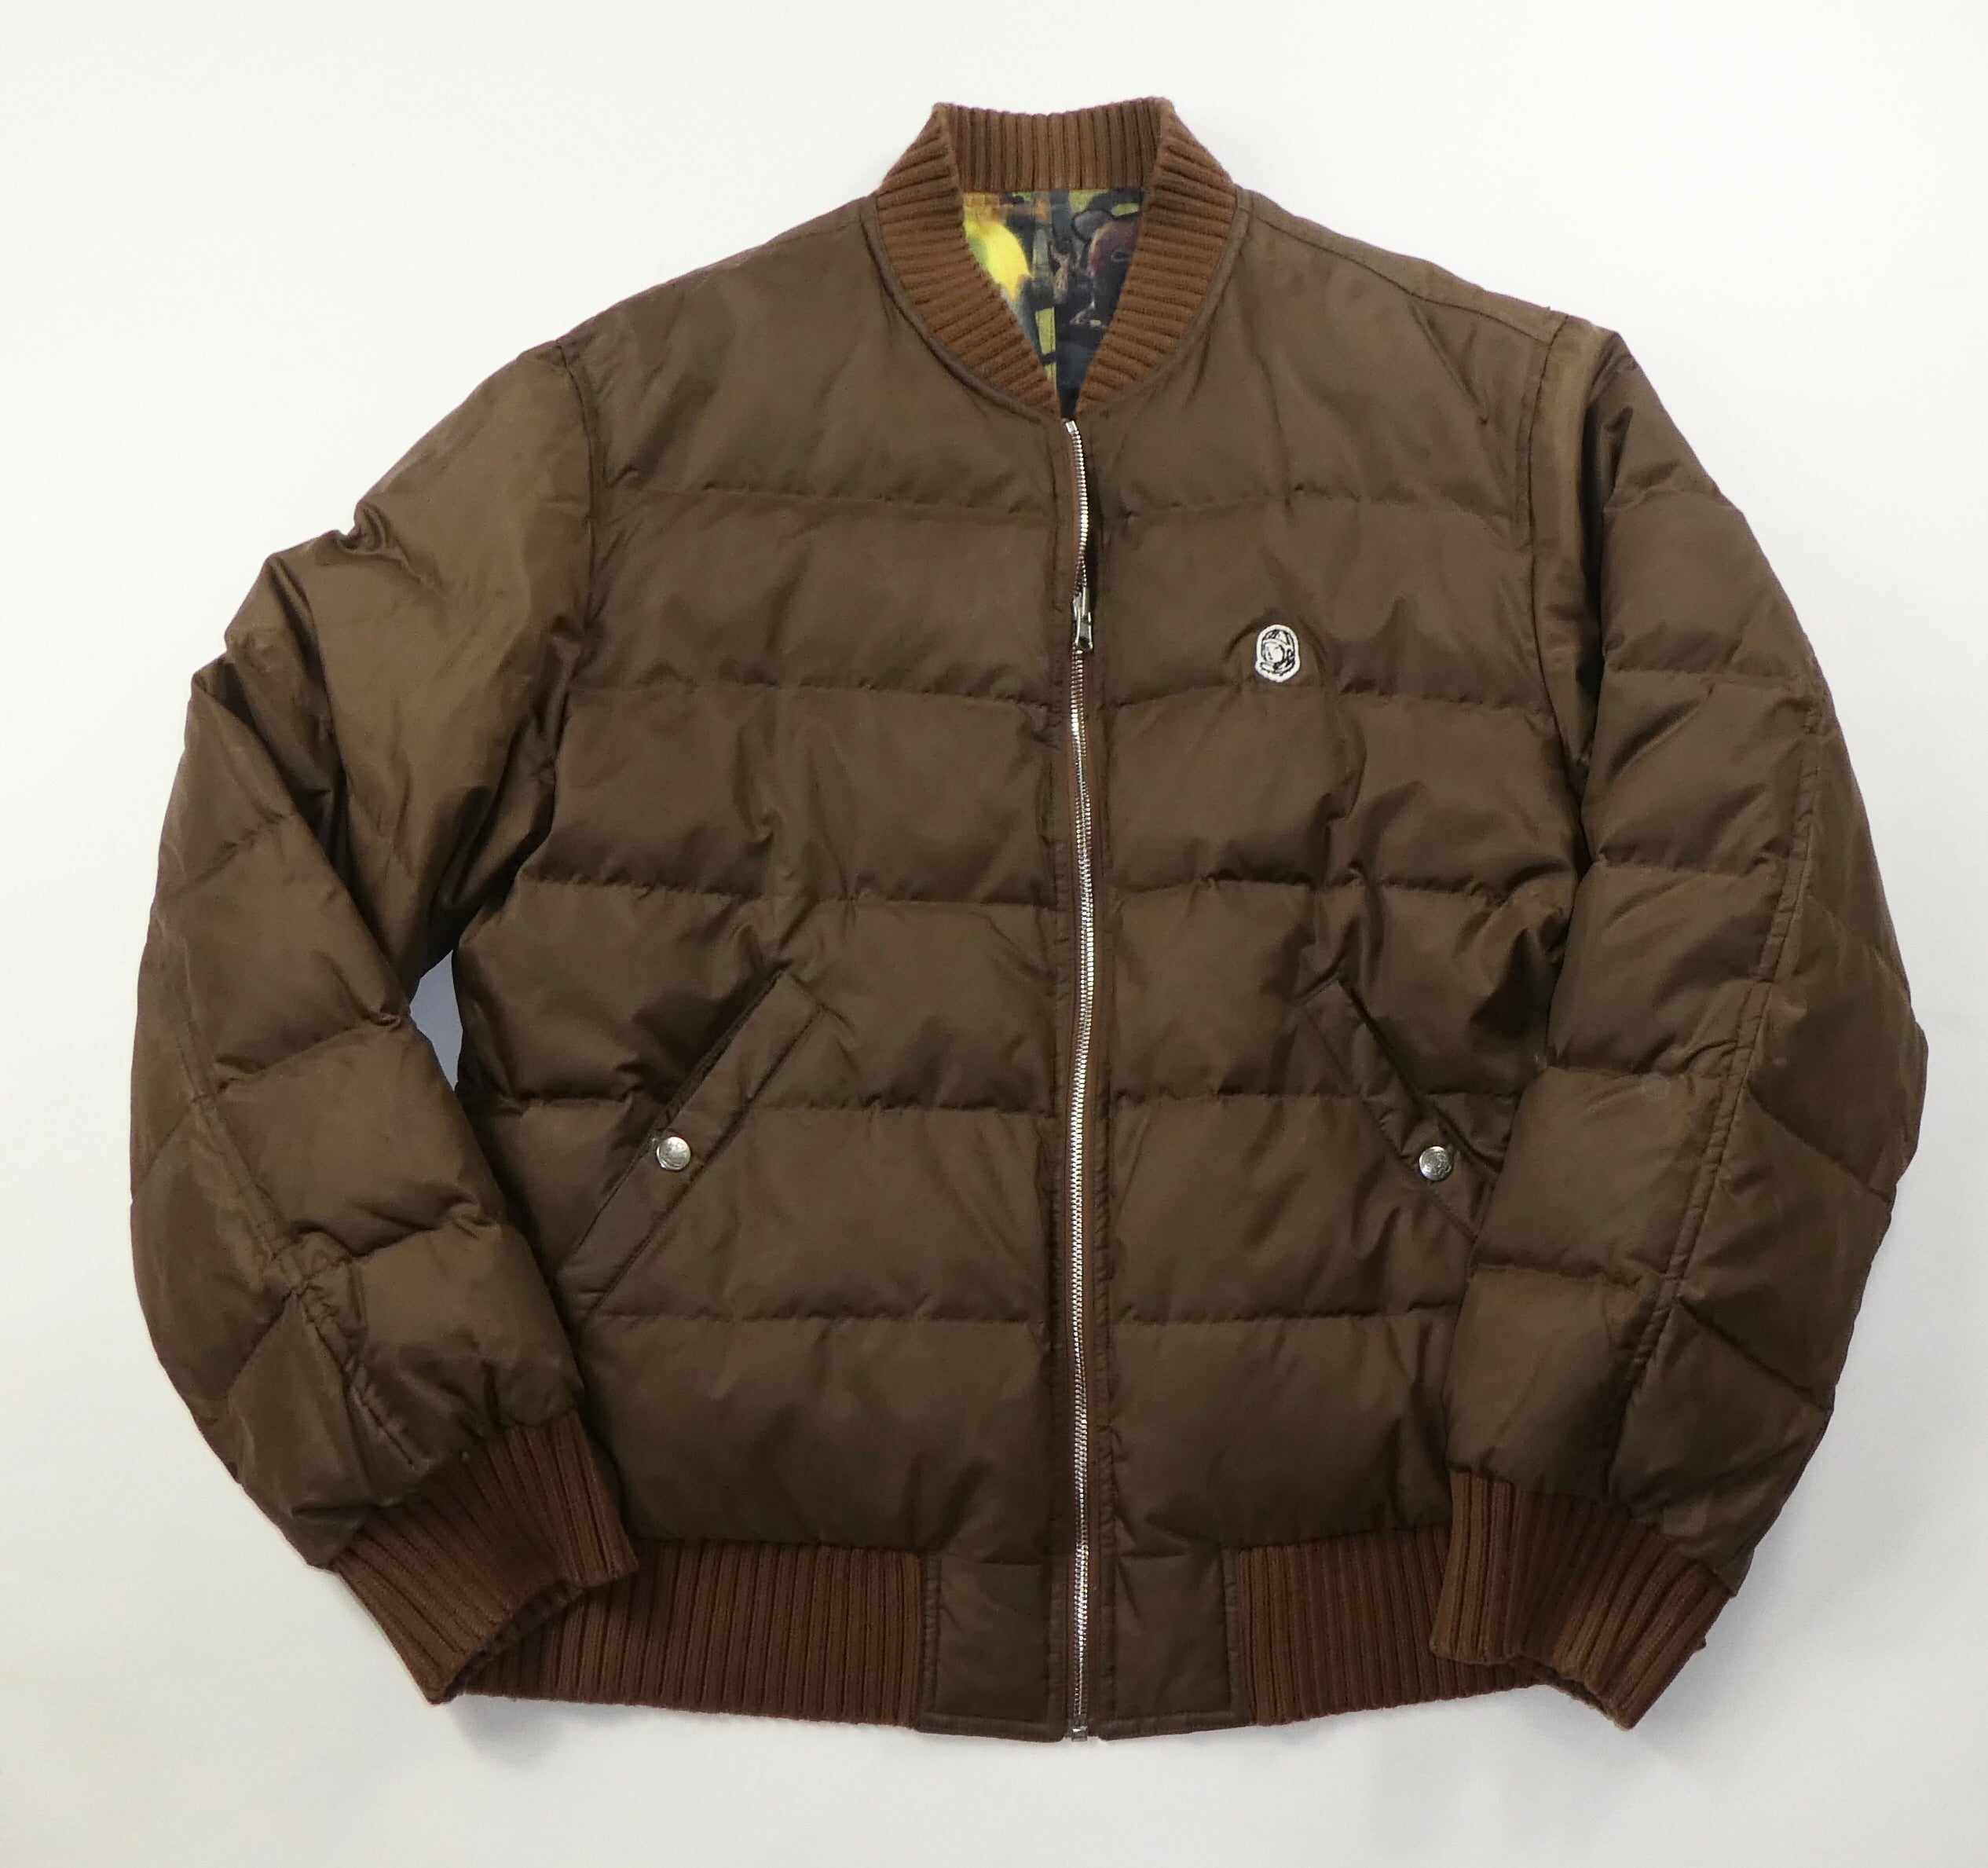 Billionaire Boys Club OG Reversible Puffer Down Jacket - Large